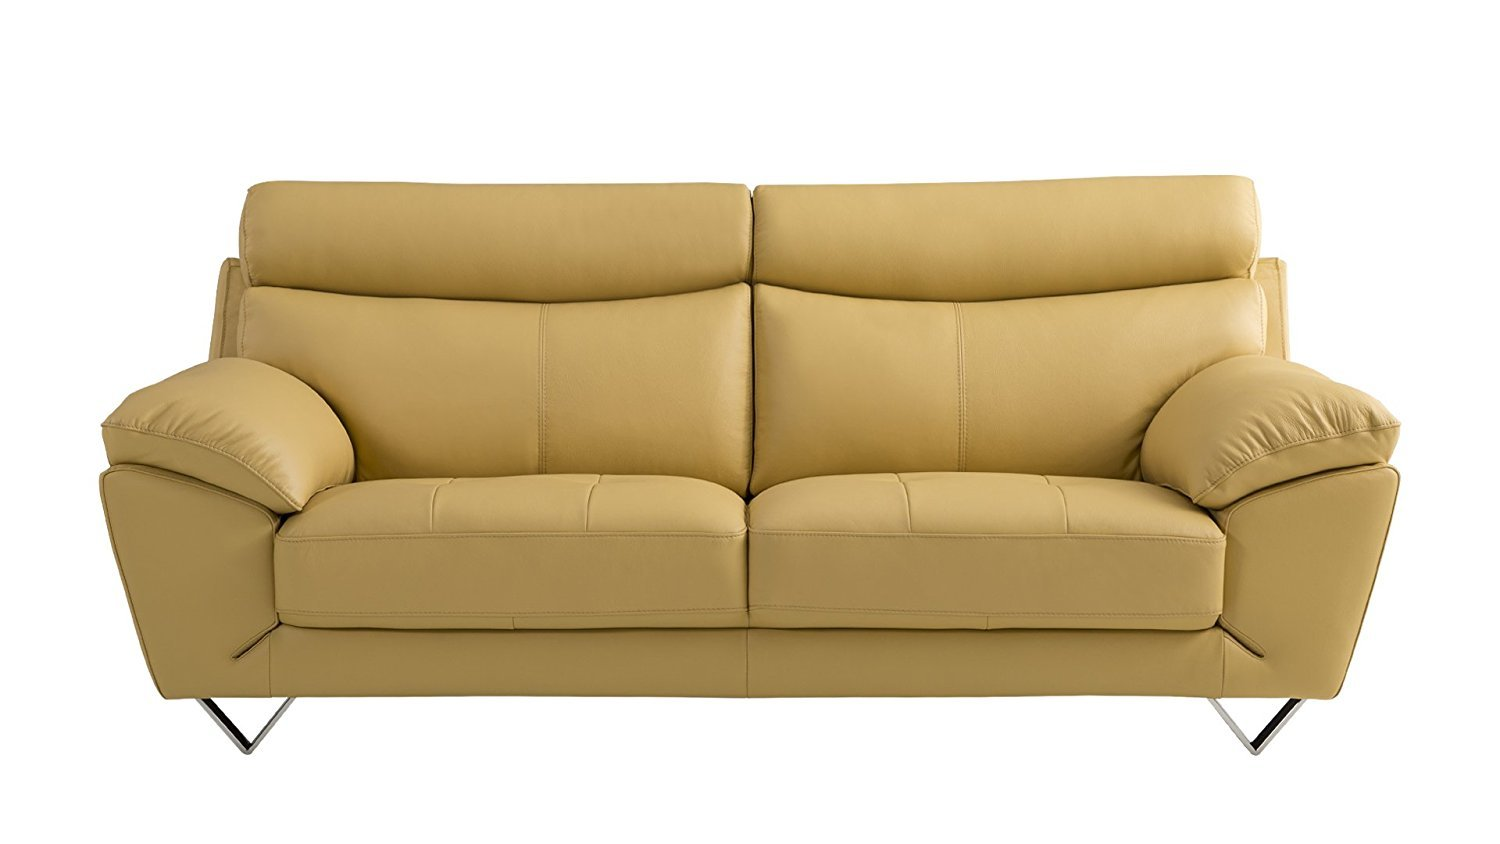 best american made leather sofas how to remove spray paint from sofa eagle furniture valencia collection italian grain